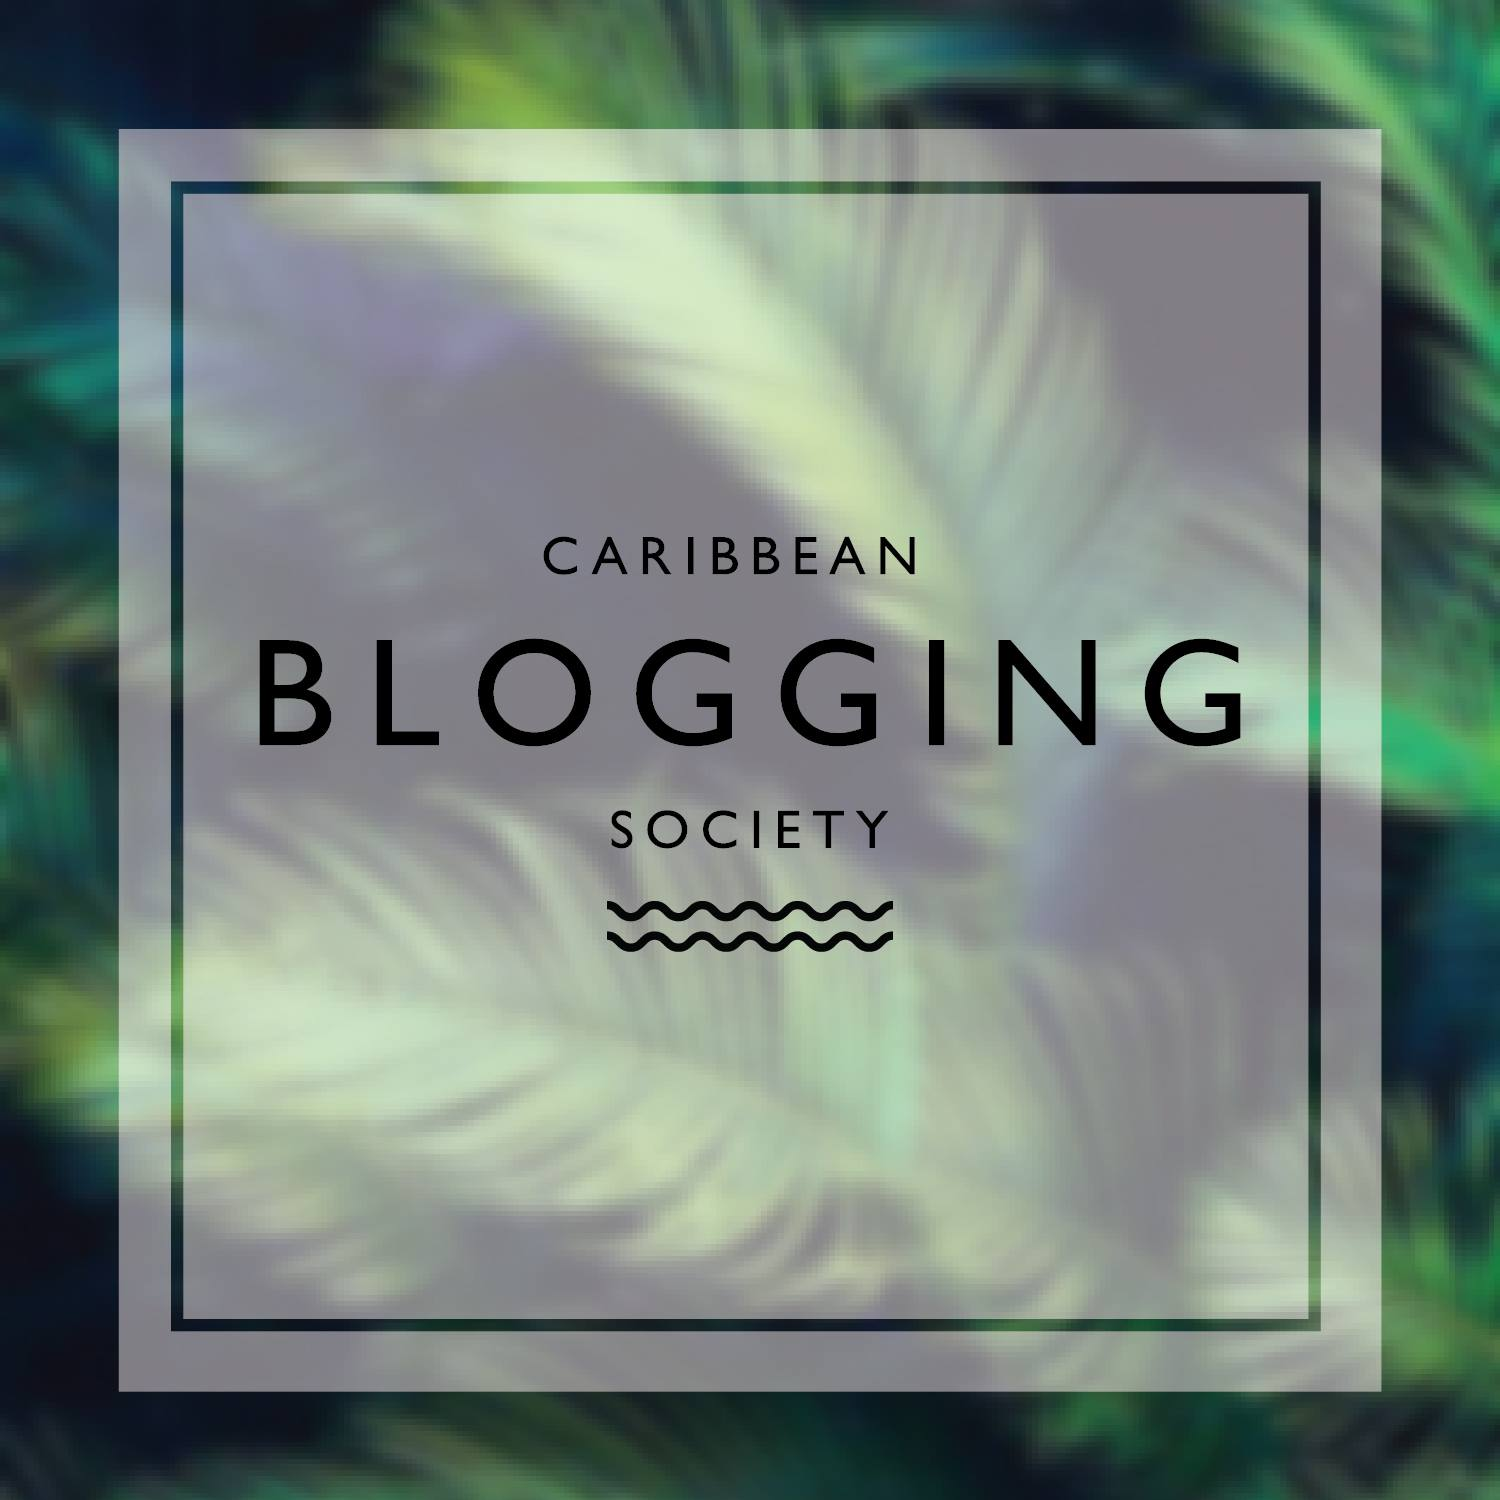 Caribbean Blogging Society